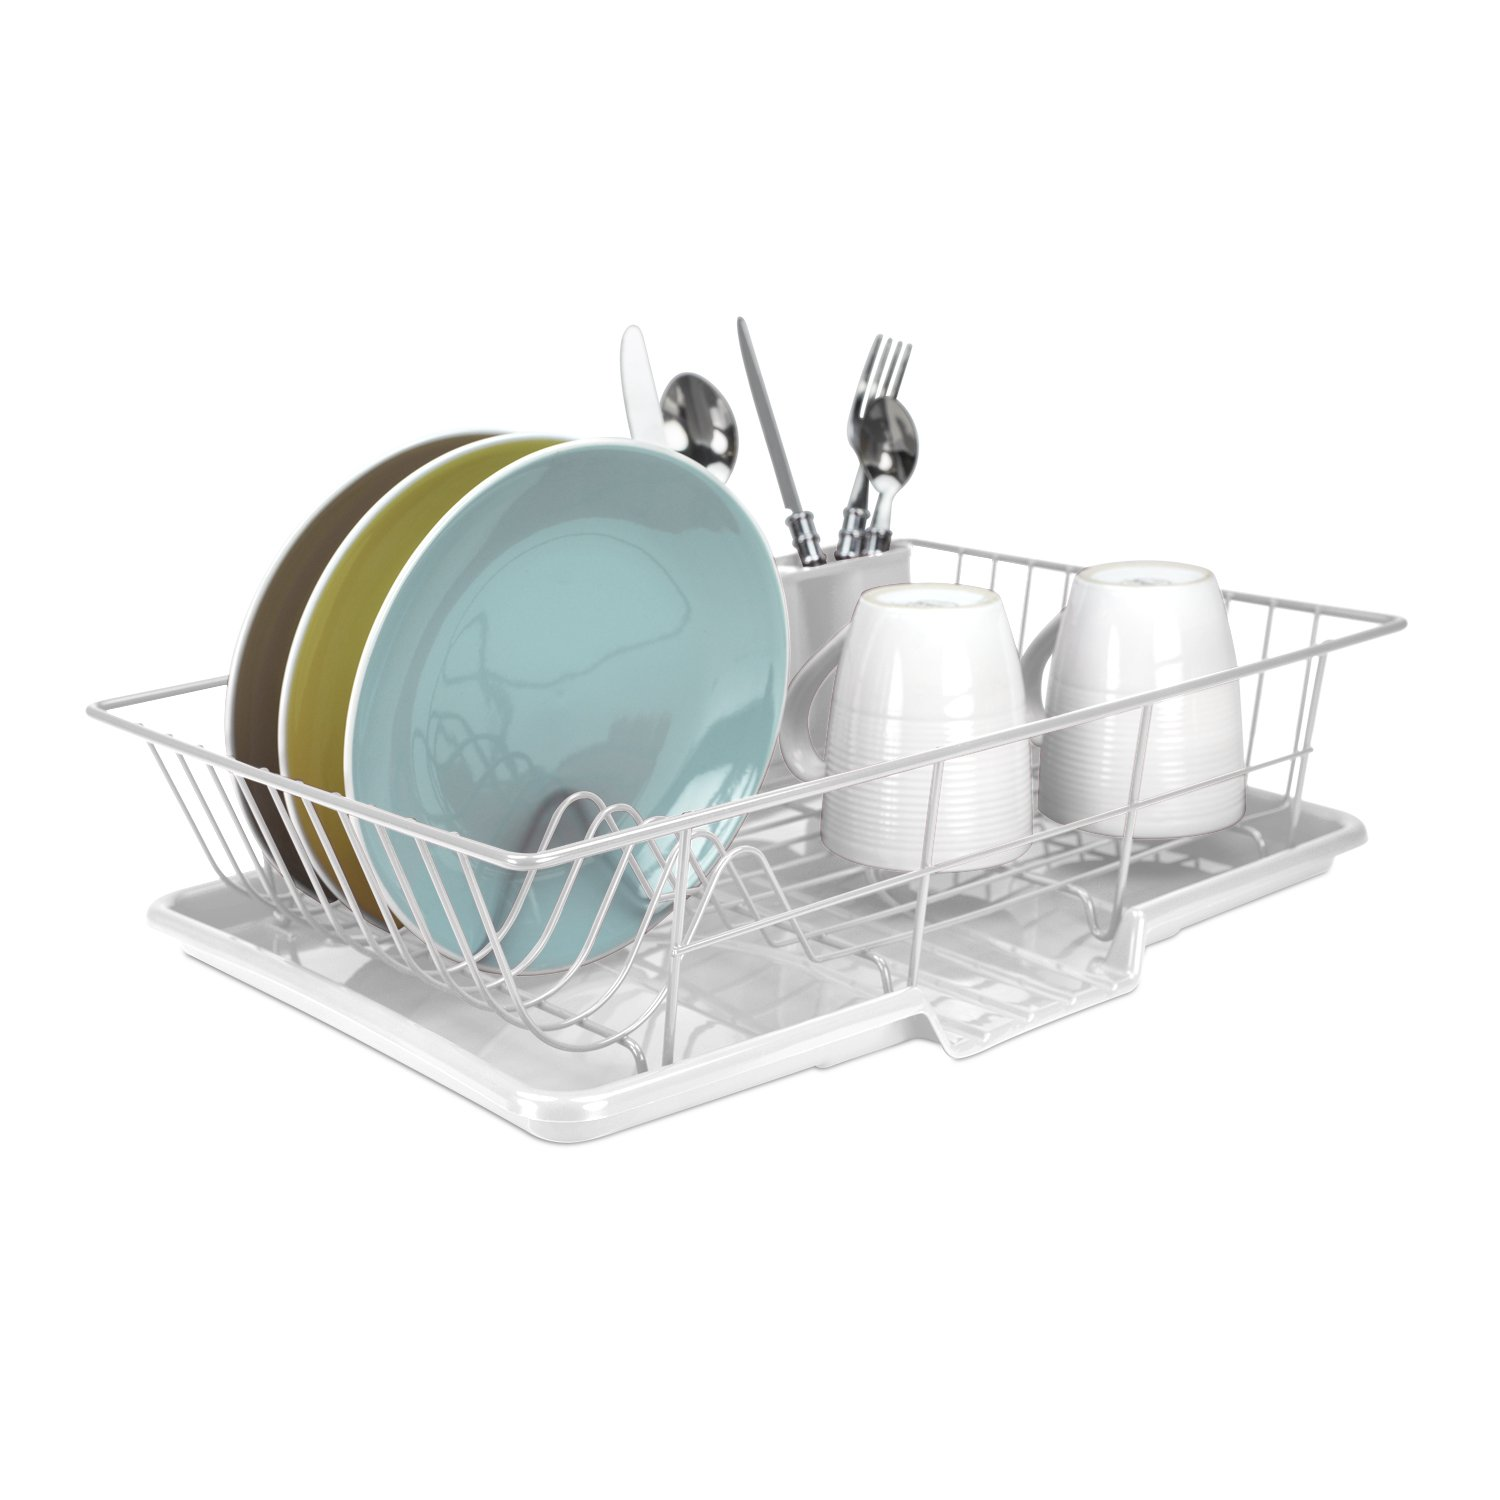 Home Basics 3-Piece Dish Drainer Set, White